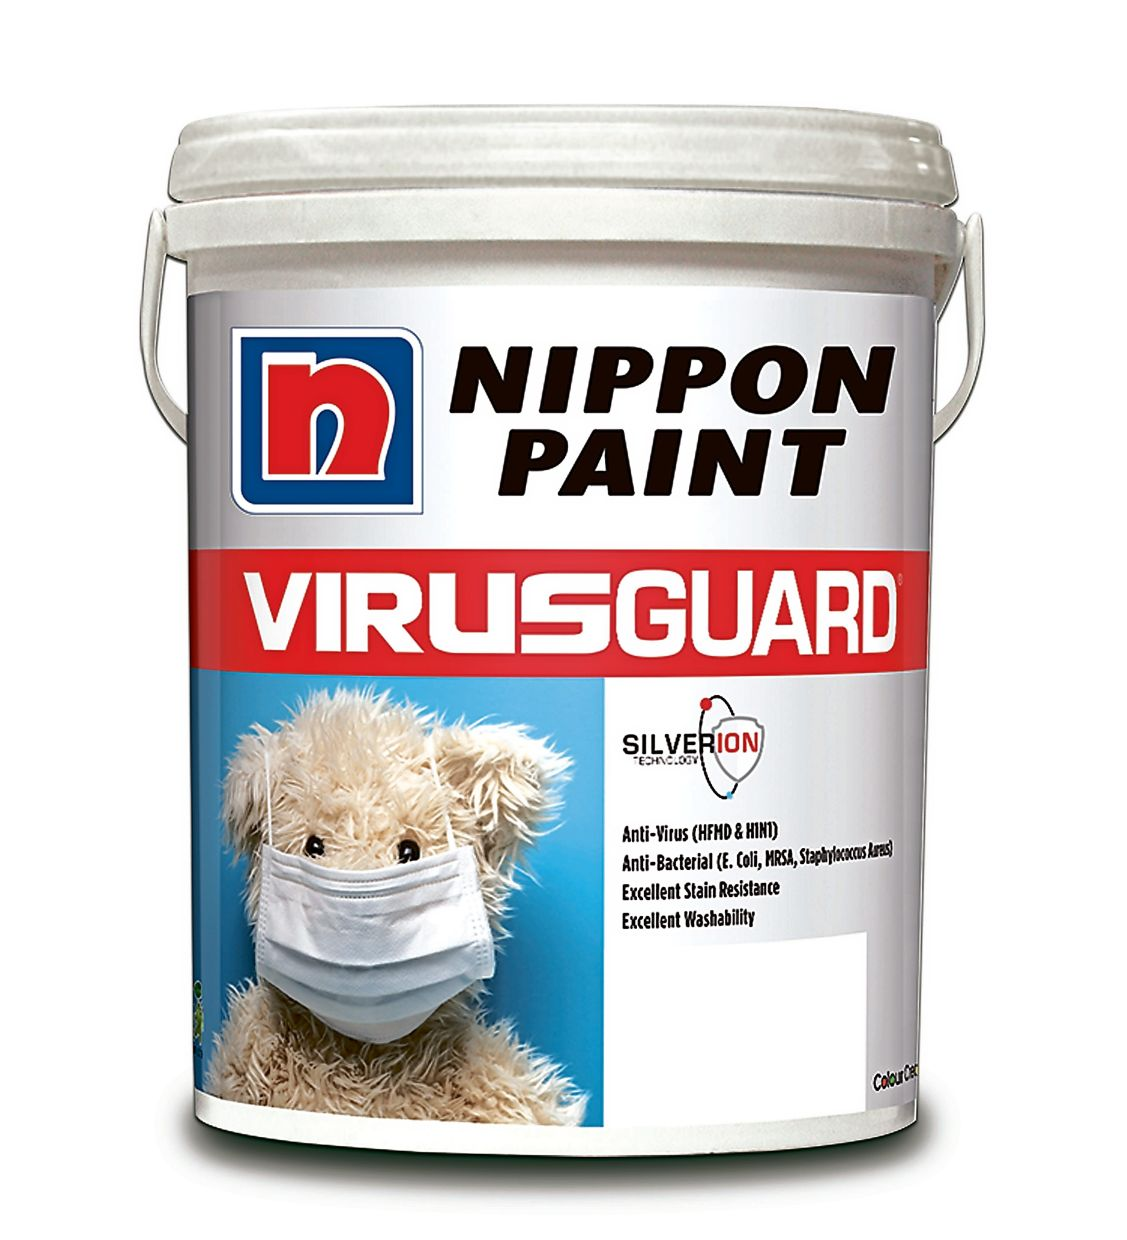 NPV uses silver ion technology that destroys viruses and bacteria.